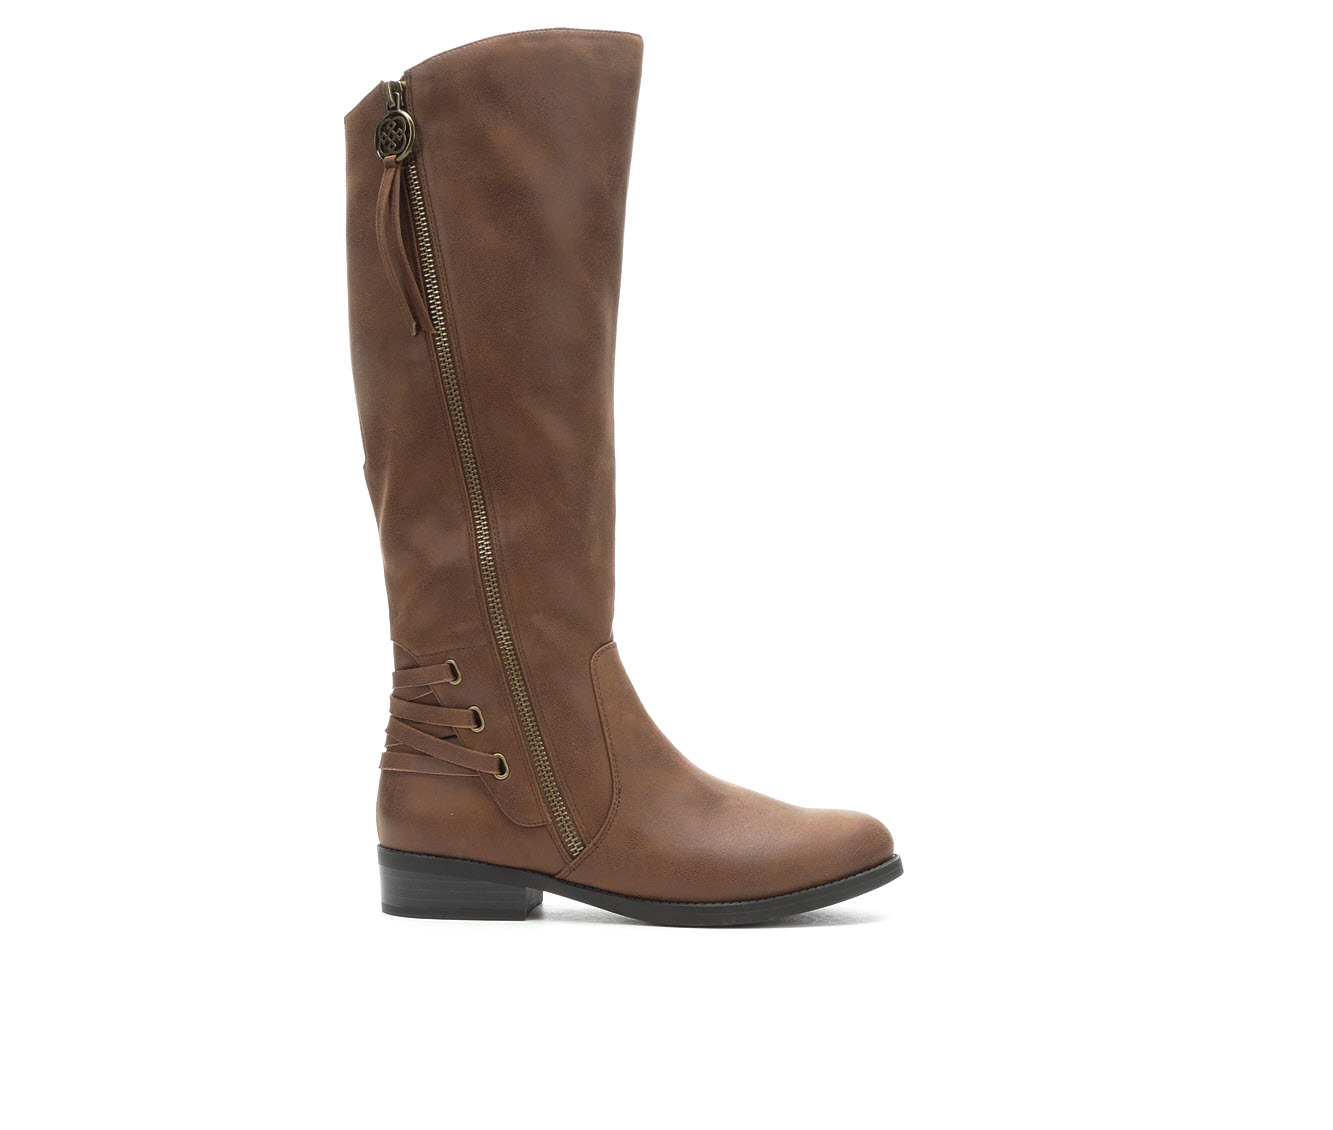 Daisy Fuentes Tavie Women's Boots (Brown - Faux Leather)